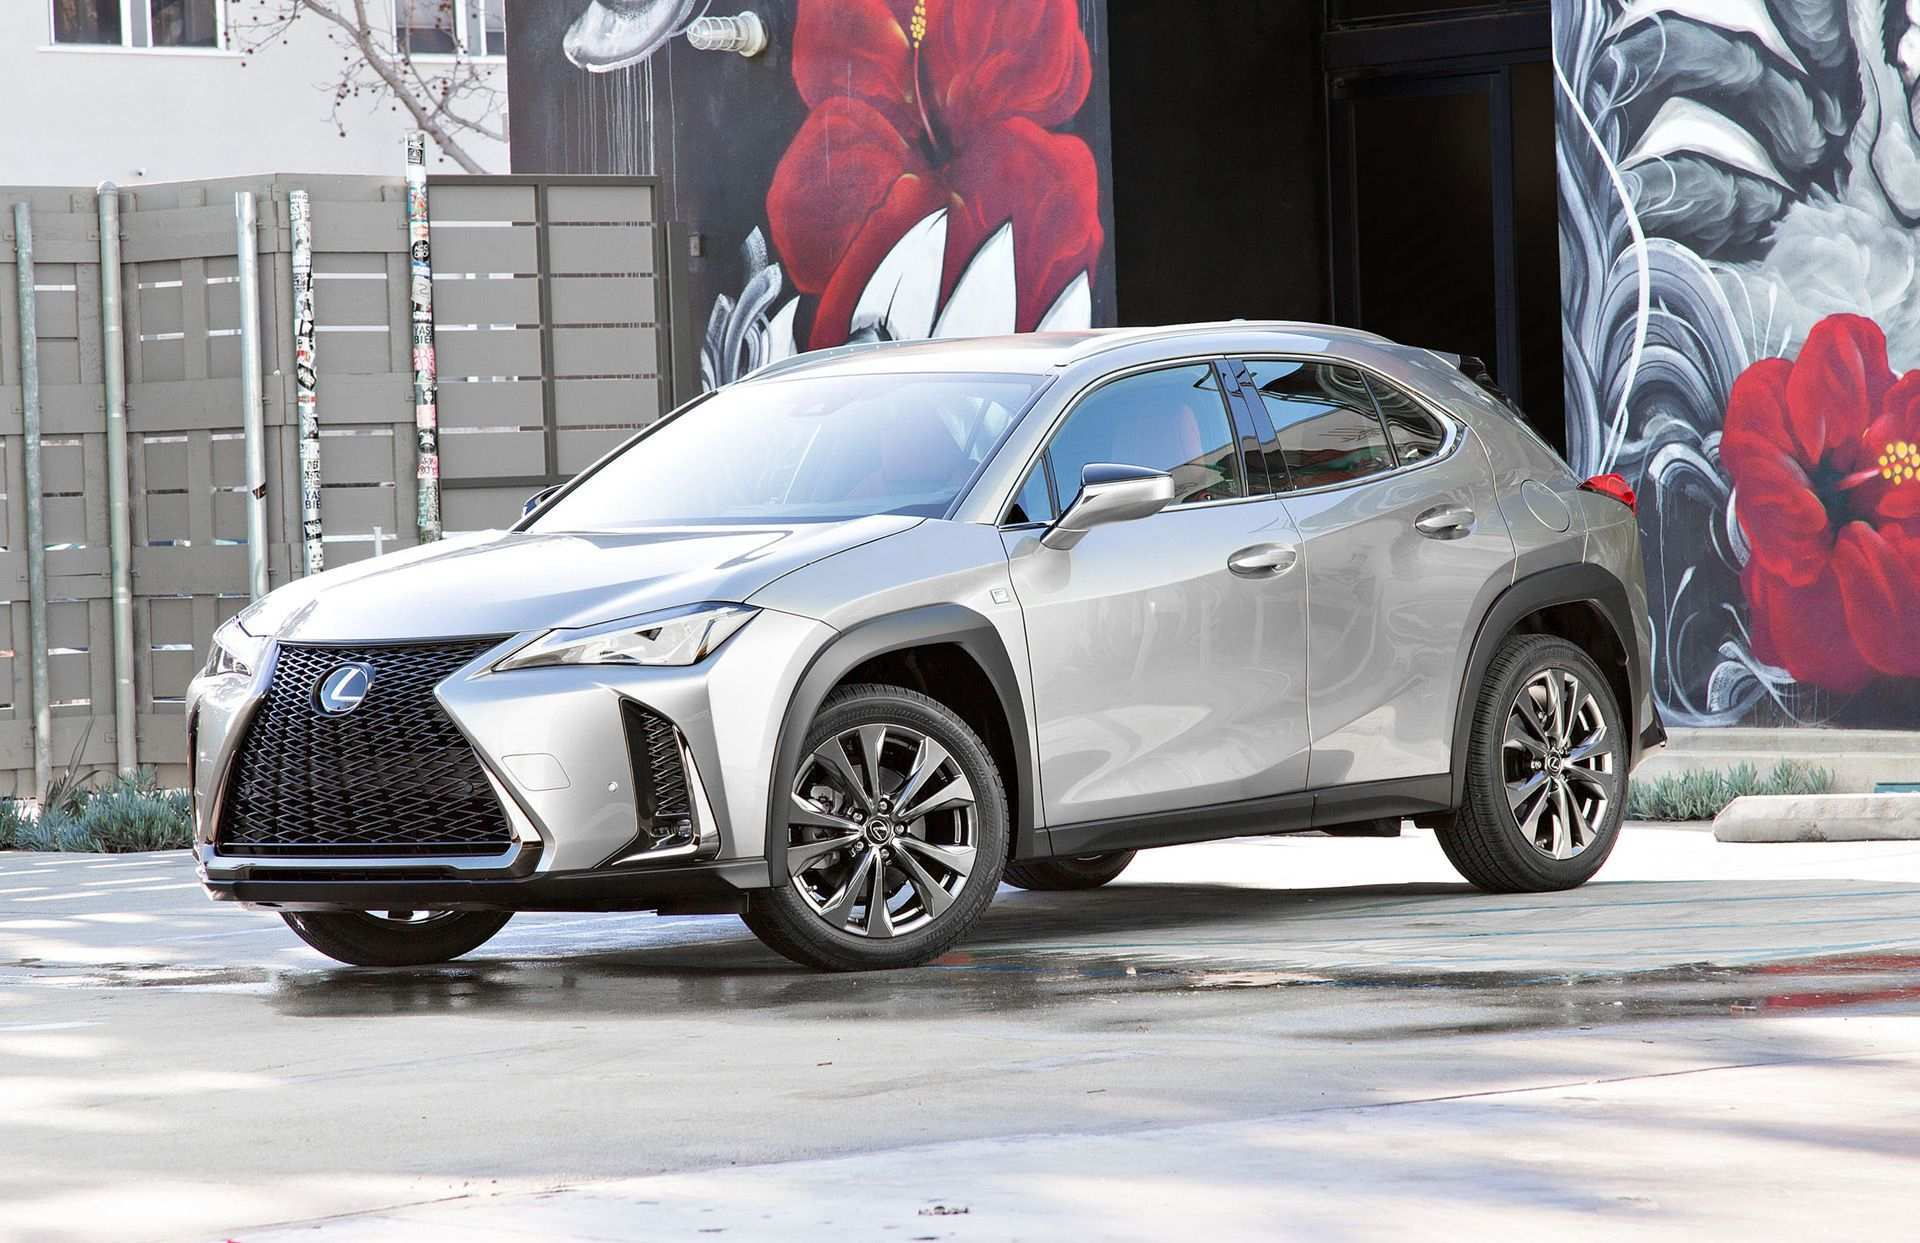 97 All New 2020 Lexus Minivan Exterior for 2020 Lexus Minivan